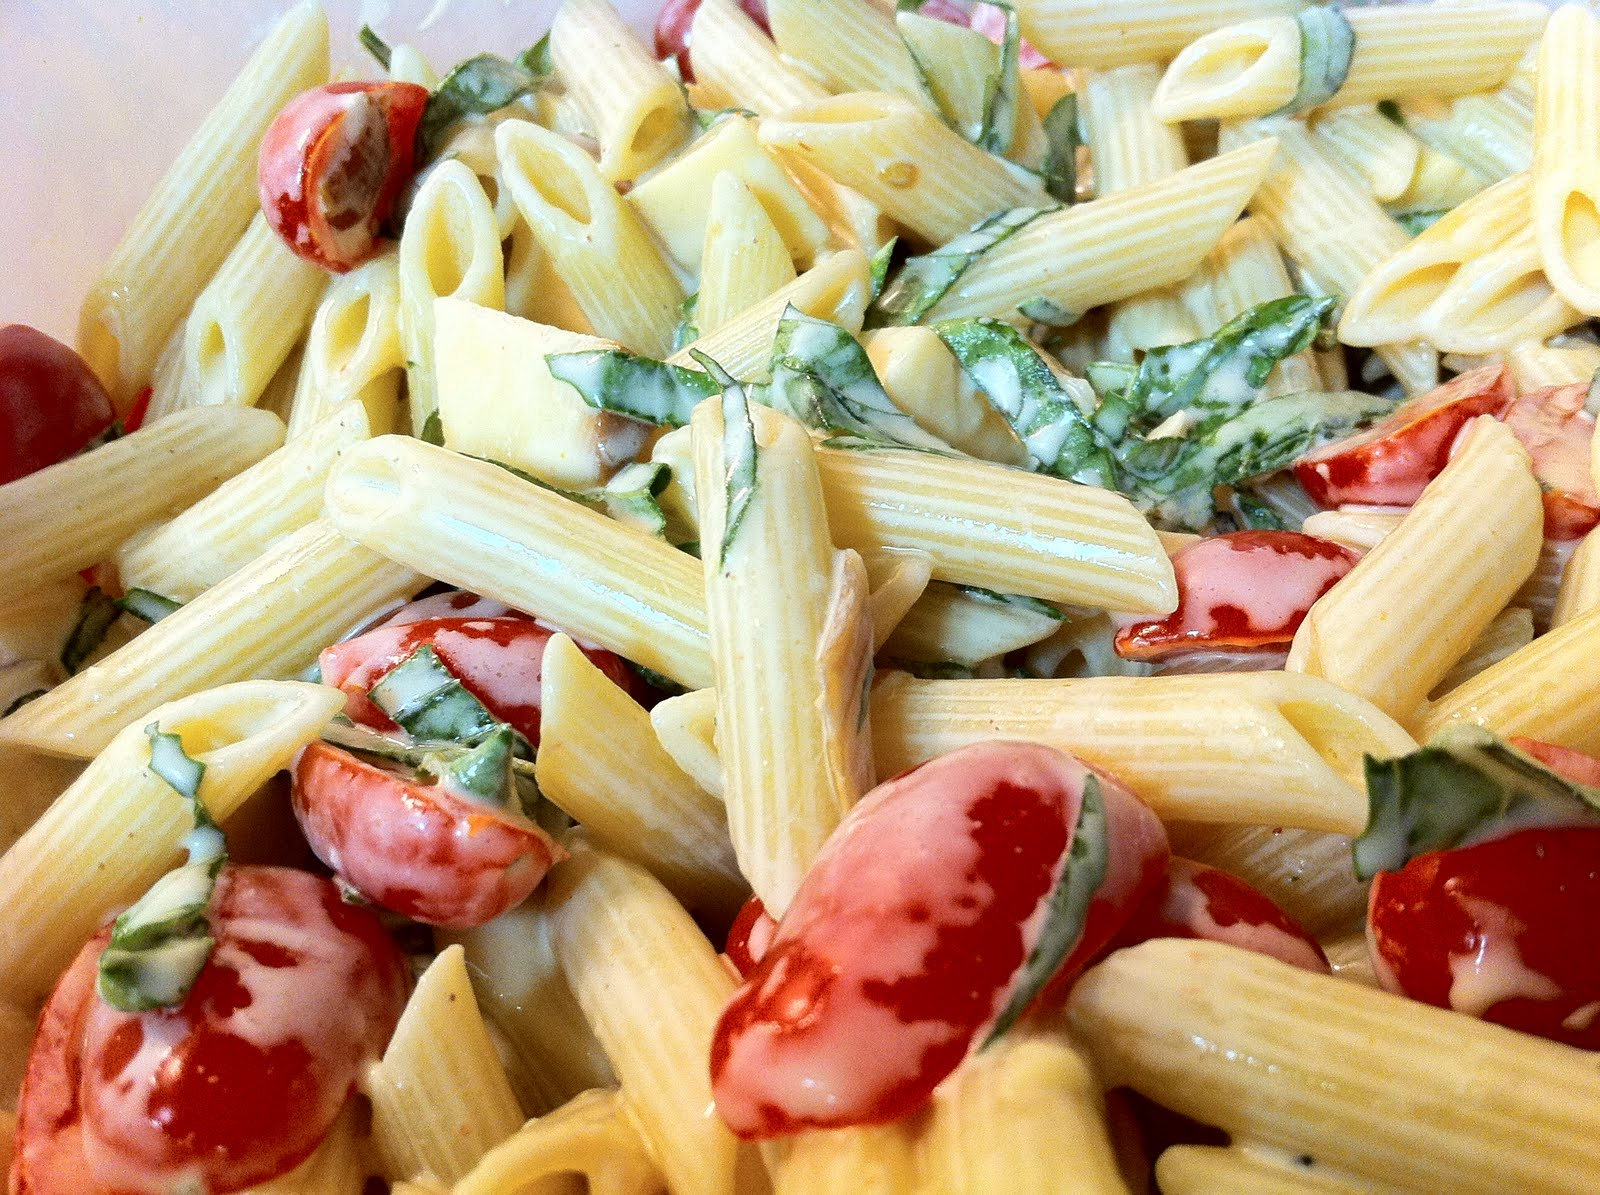 Spicy Pasta Salad with Smoked Gouda, Tomatoes, and Fresh Basil